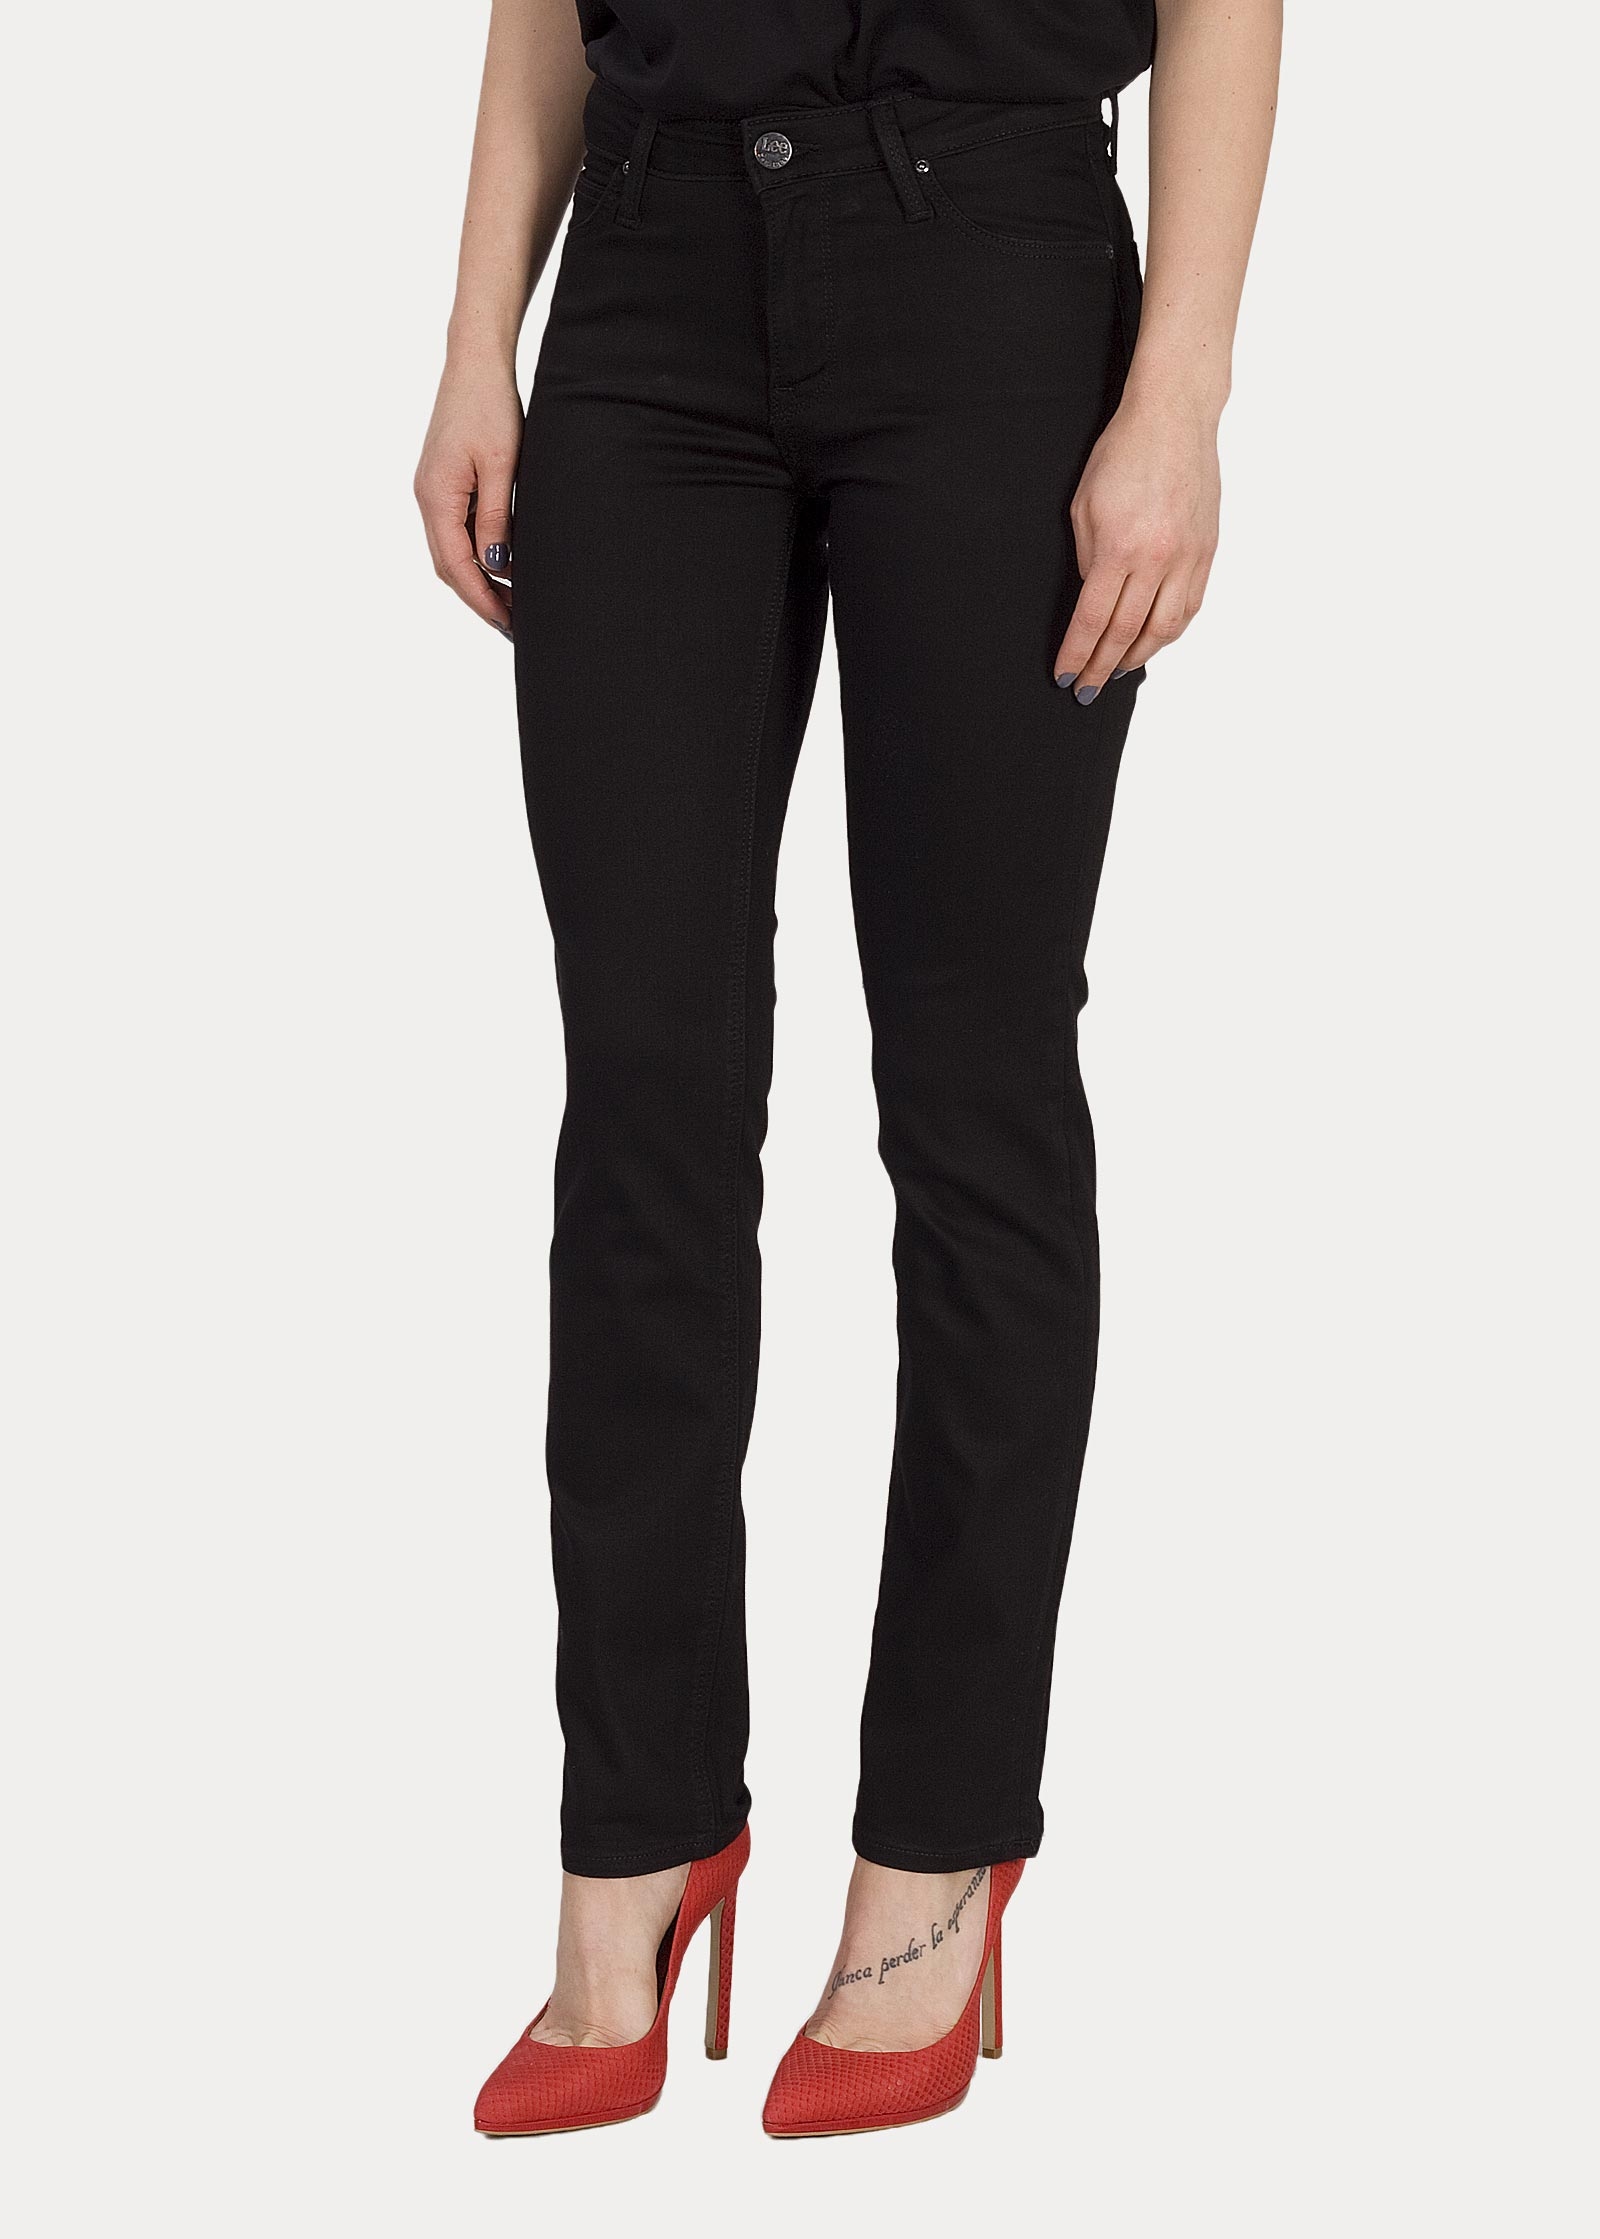 3ab7576024 Woman s Jeans Lee® Elly - Black Rinse (L305FS47) - Jeans24h - Your ...